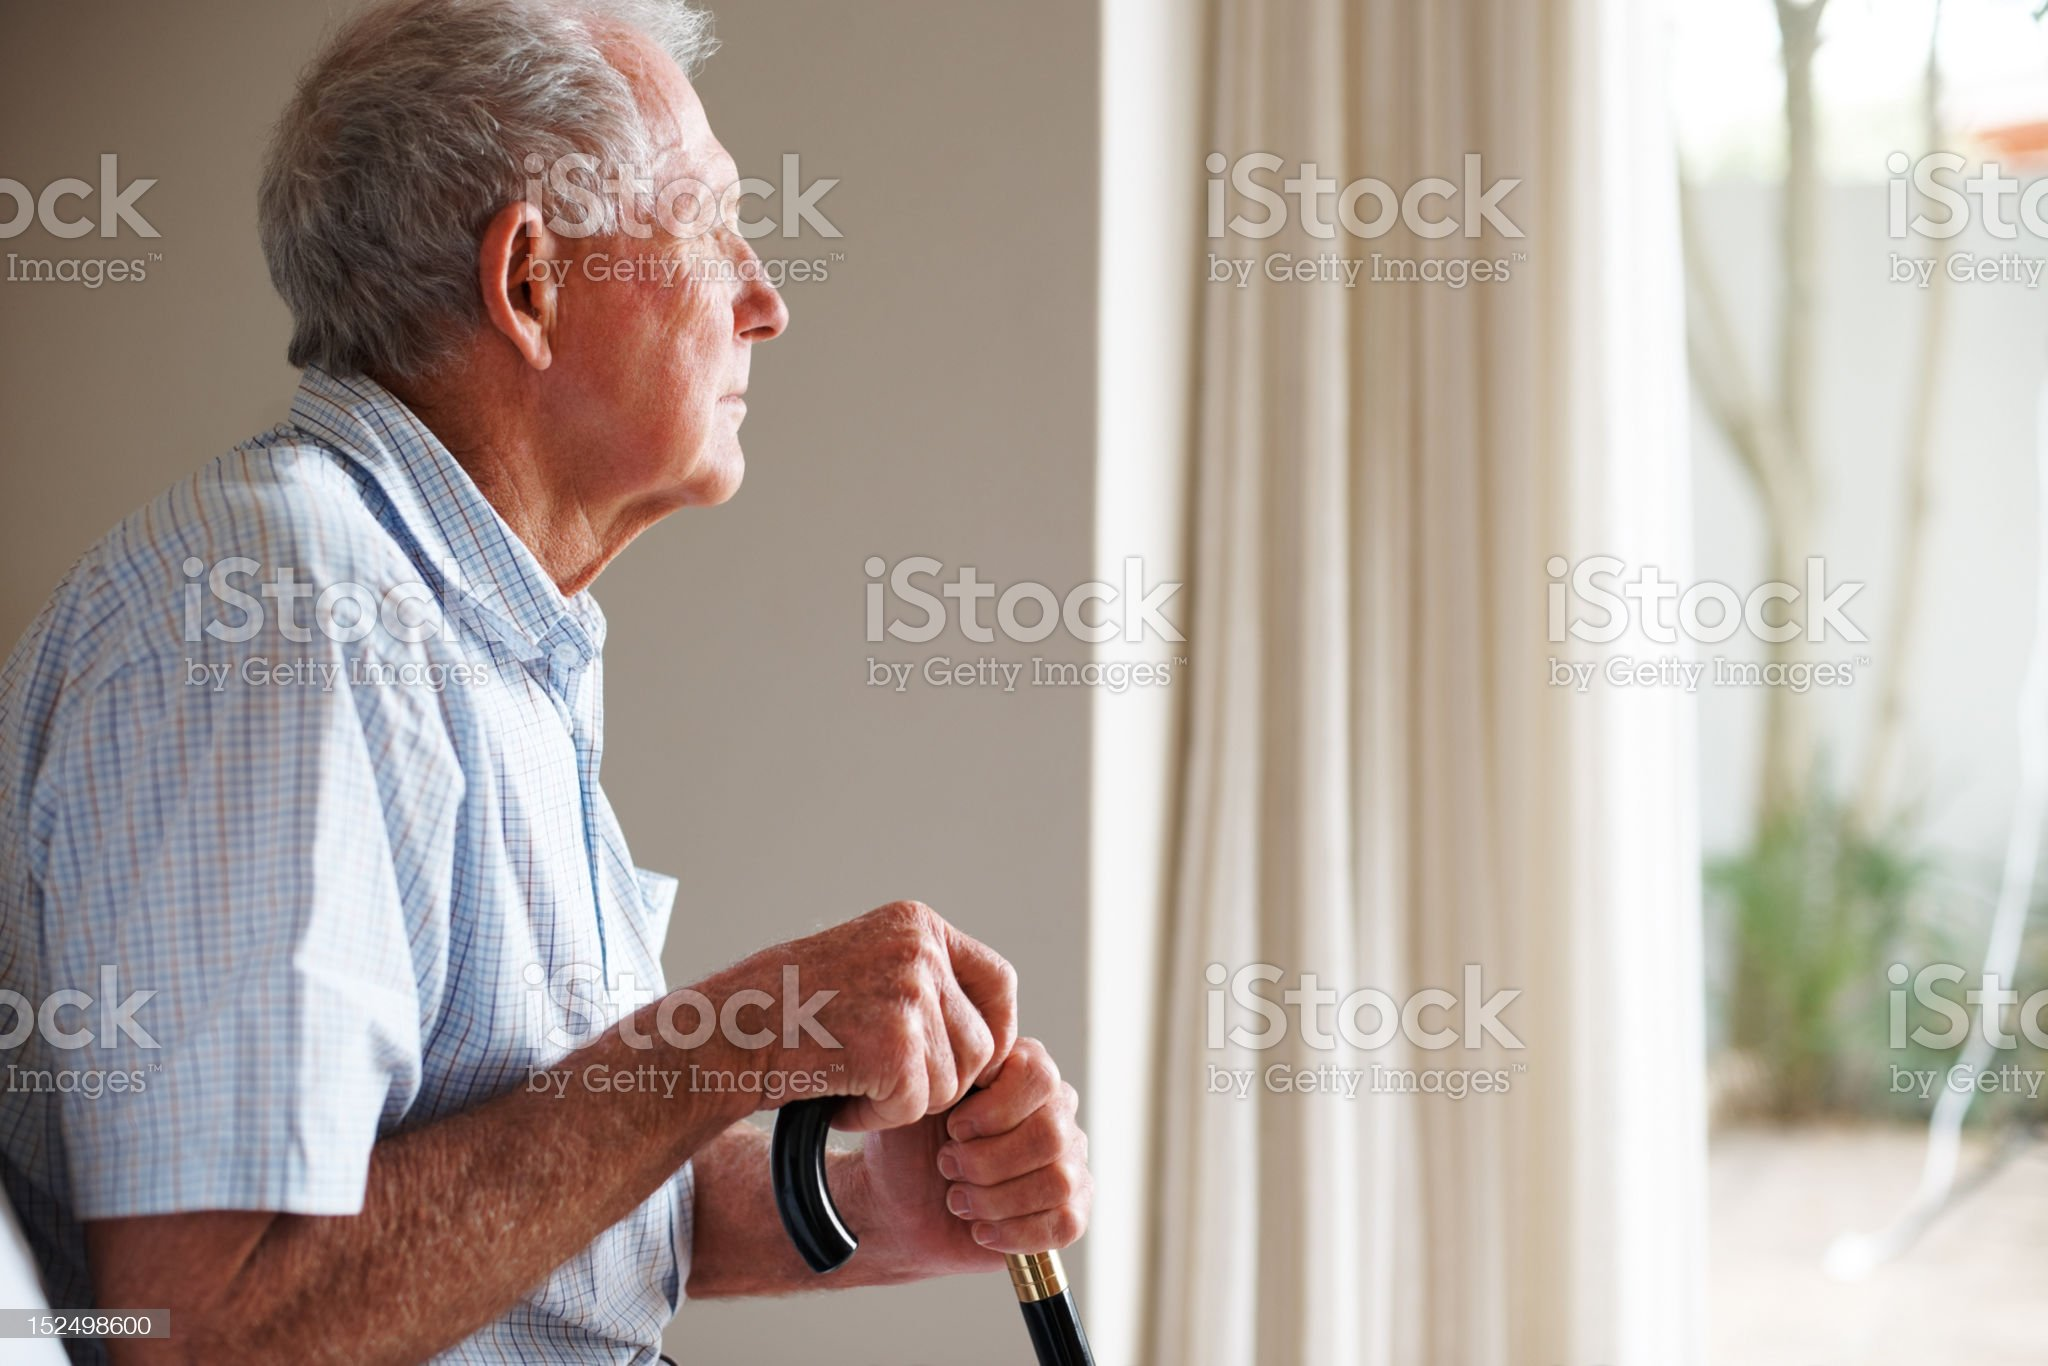 Elderly man holding a walking stick looking outside royalty-free stock photo